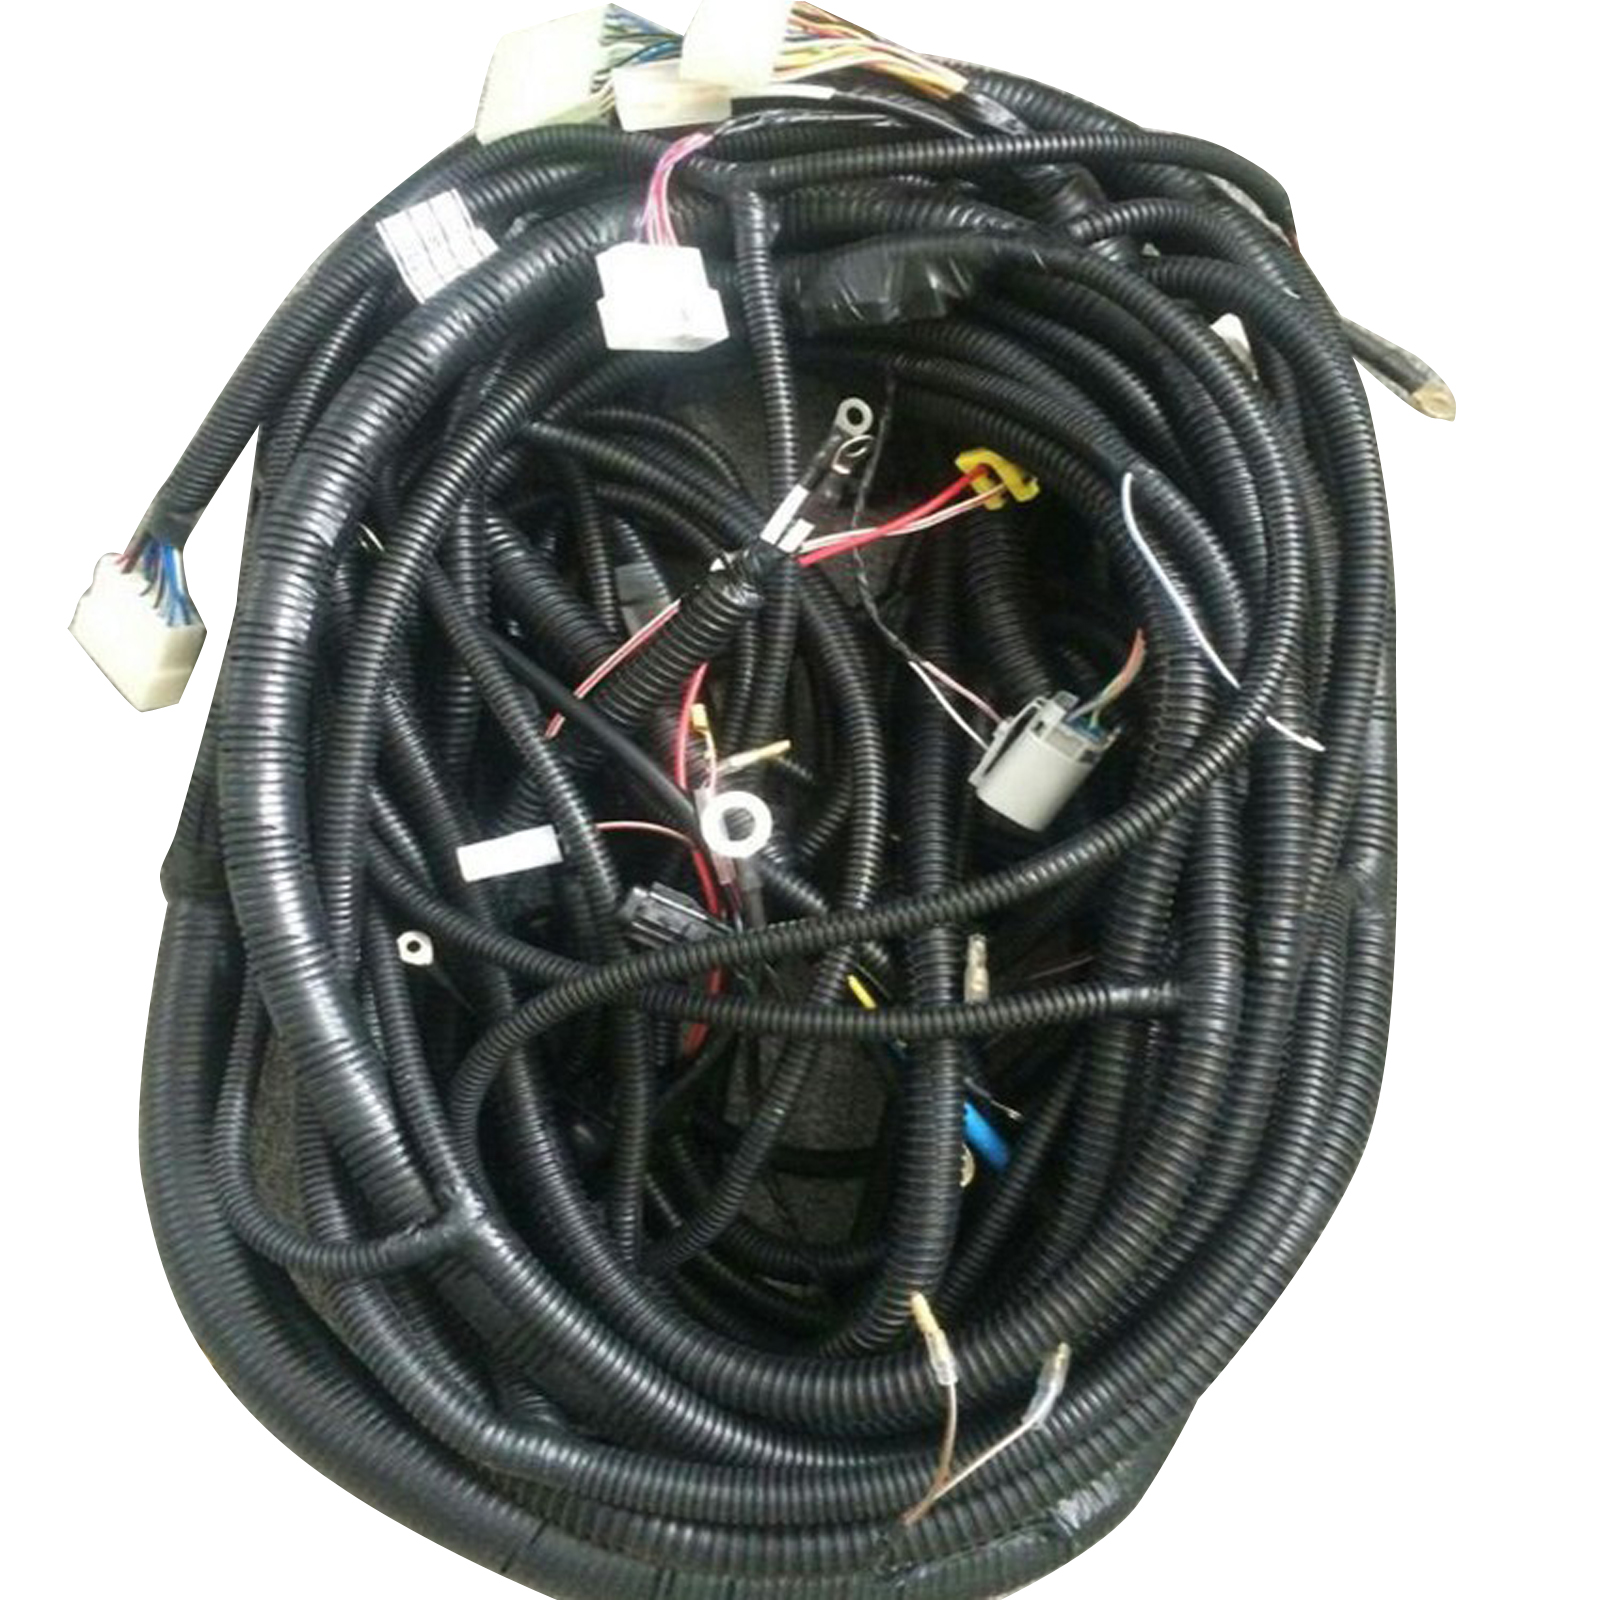 hight resolution of details about complete wiring harness for daewoo doosan dh215 7 excavator outer and inner